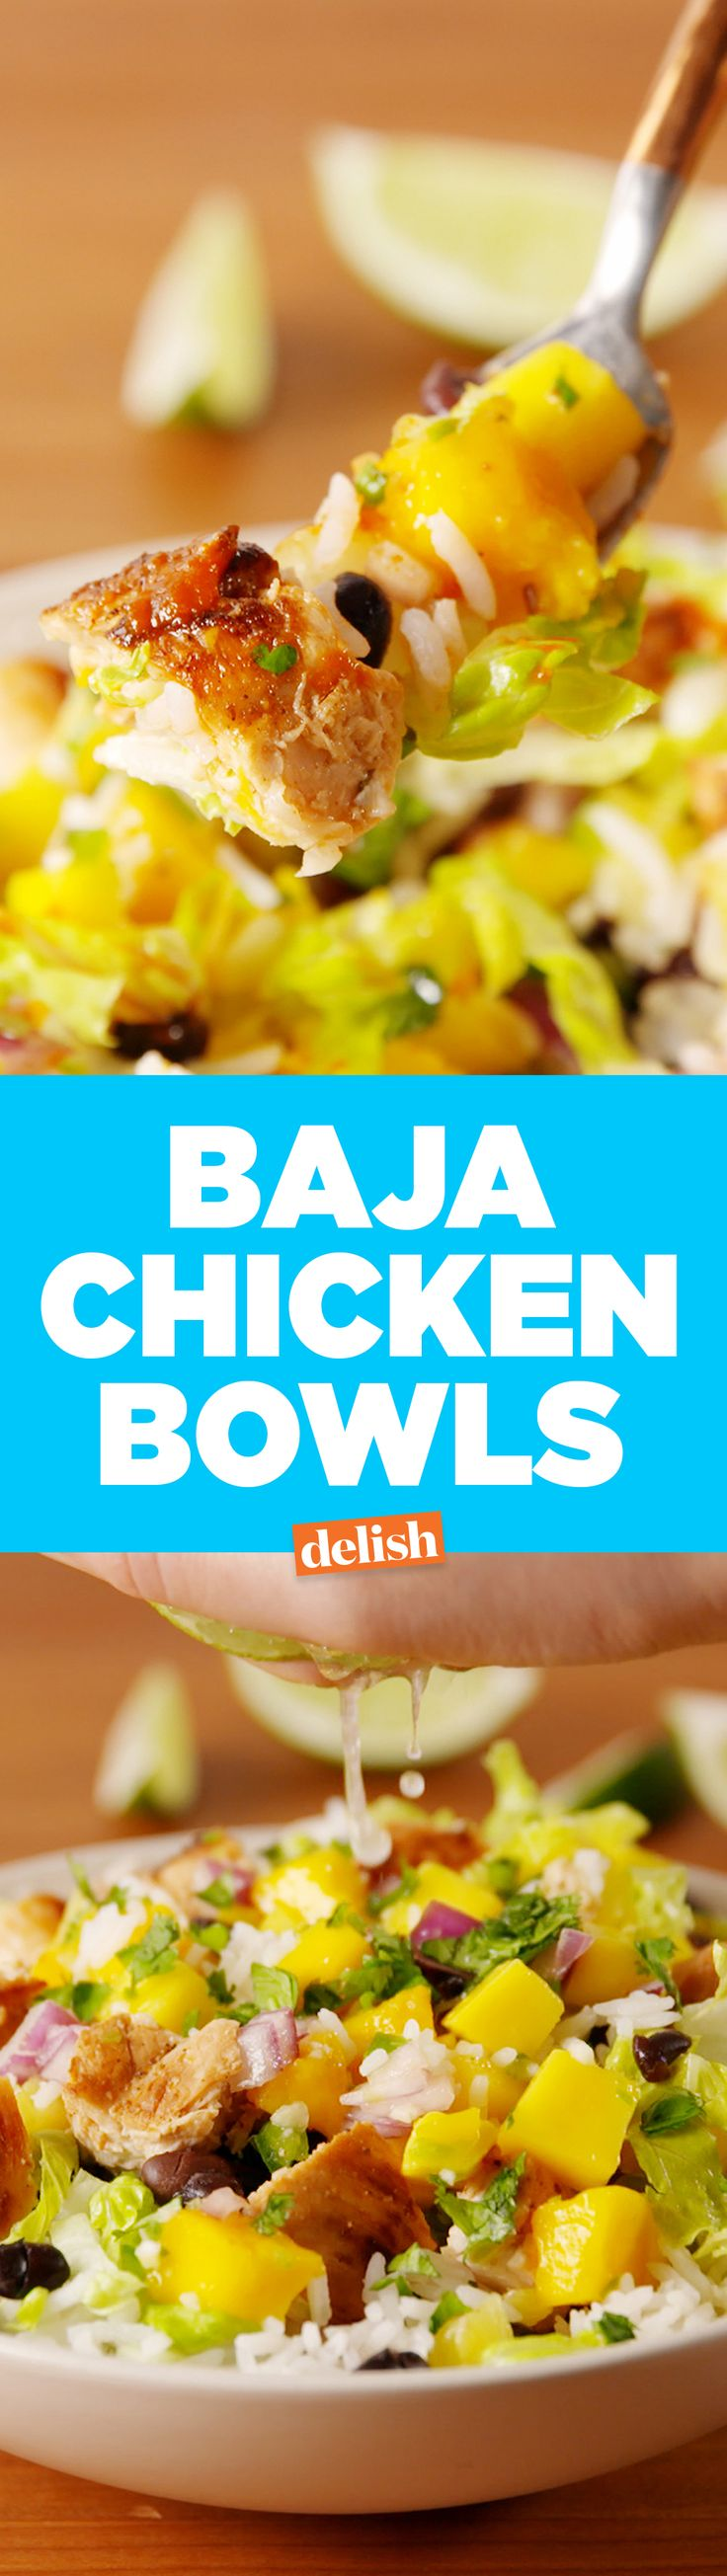 These healthy Baja Chicken Bowls taste like the tropical vacation you've been dreaming of. Get the recipe on Delish.com.